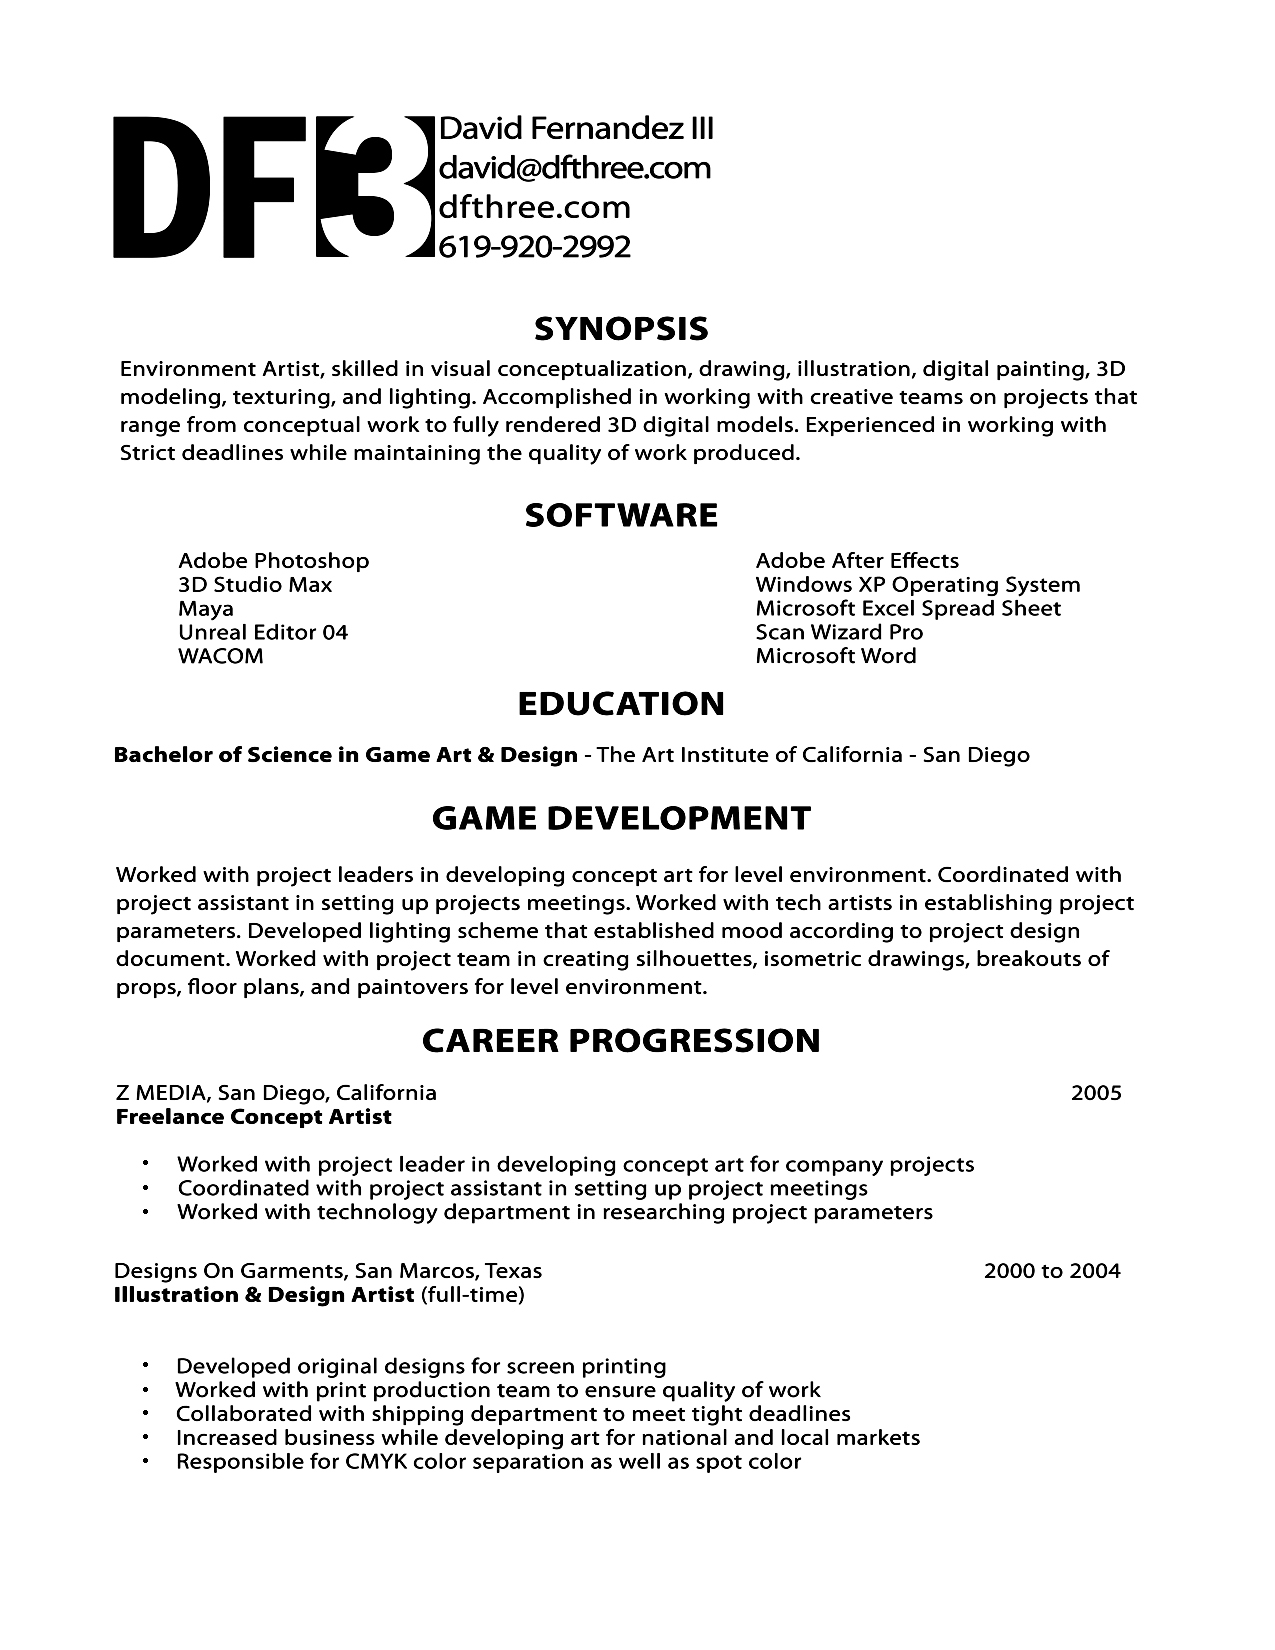 Opposenewapstandardsus  Prepossessing Game Developer Resume Game Tester Resume Sample Game Tester  With Heavenly Better Jobs Faster With Amazing Compliance Manager Resume Also Google Docs Resumes In Addition Chef Resume Objective And How To Write References For A Resume As Well As Cover Resume Letter Additionally Sample Resume For Secretary From Kelseymarieco With Opposenewapstandardsus  Heavenly Game Developer Resume Game Tester Resume Sample Game Tester  With Amazing Better Jobs Faster And Prepossessing Compliance Manager Resume Also Google Docs Resumes In Addition Chef Resume Objective From Kelseymarieco